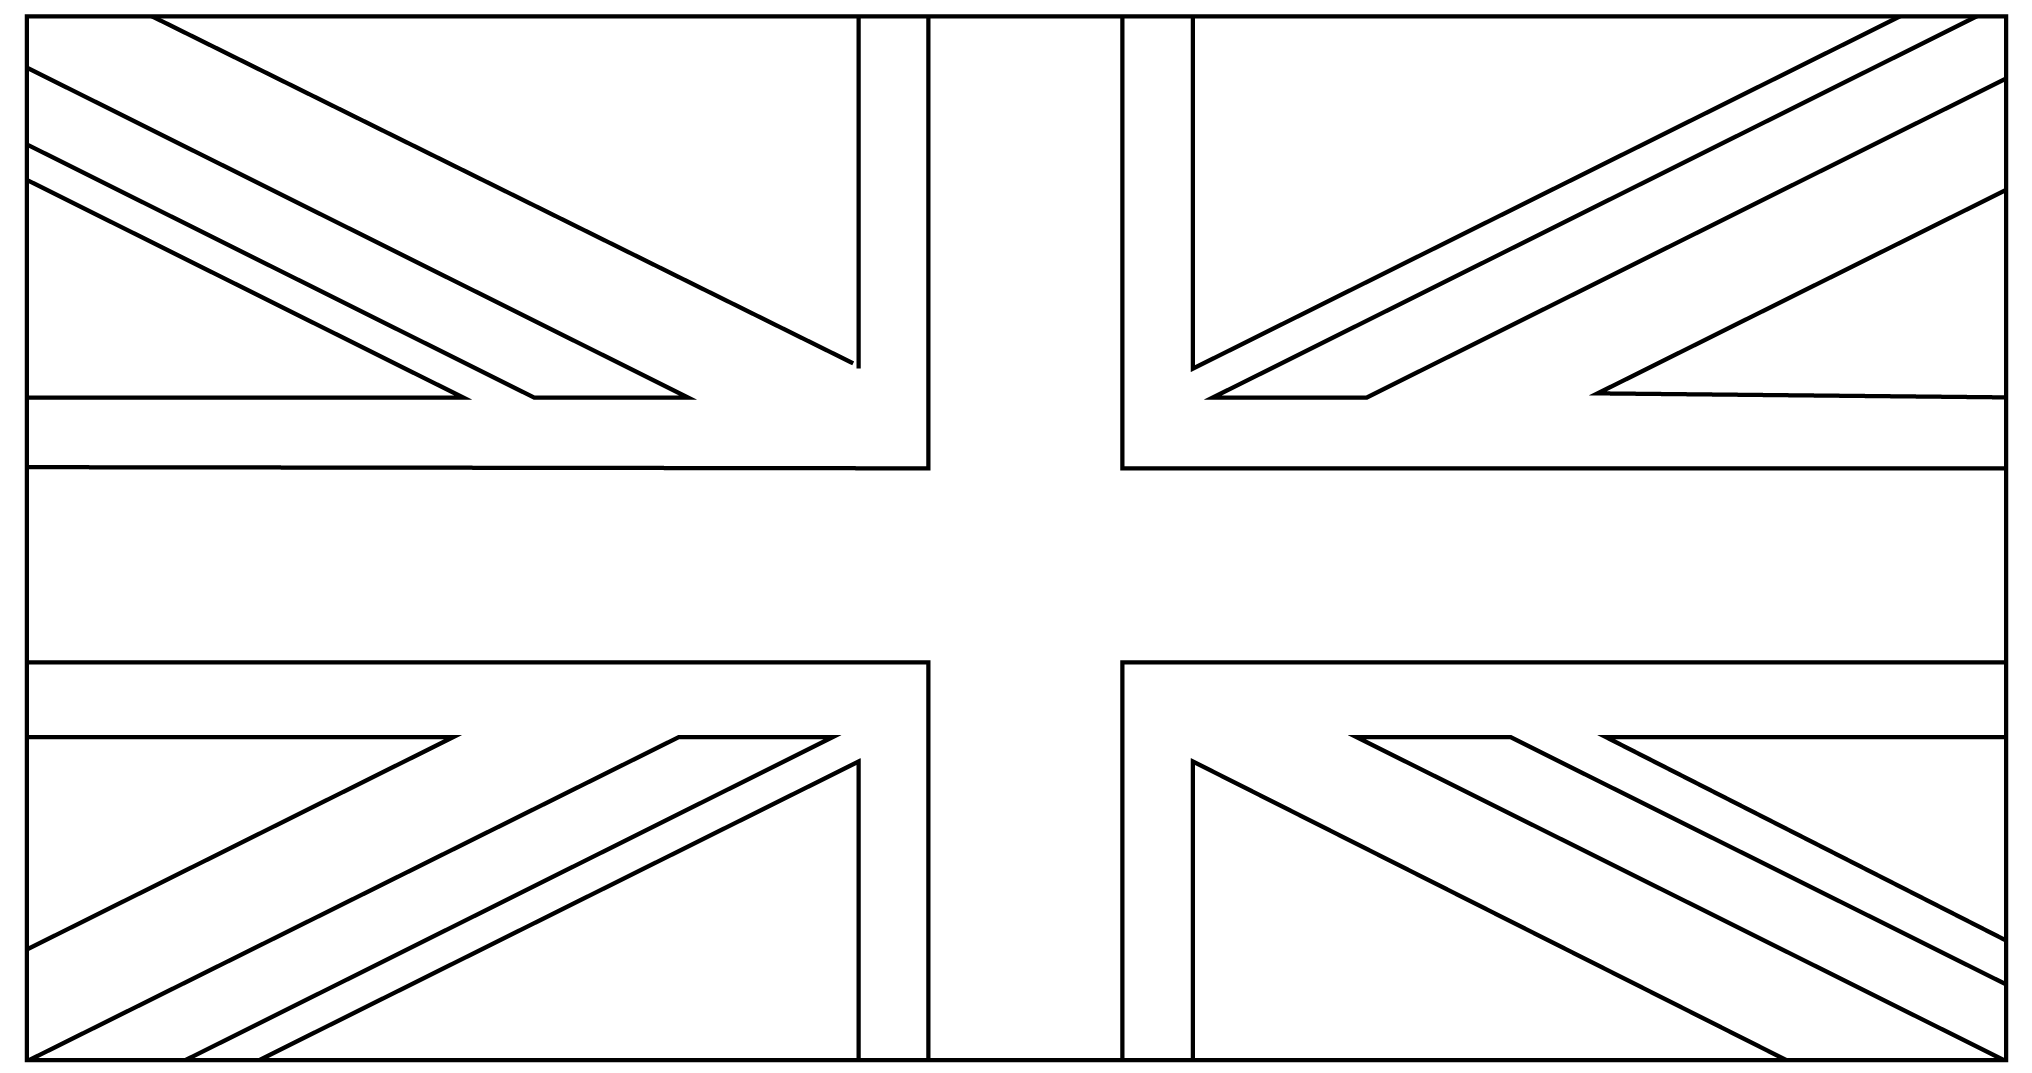 colouring pictures of the union jack flag union jack drawing at getdrawings free download union jack pictures flag of the colouring